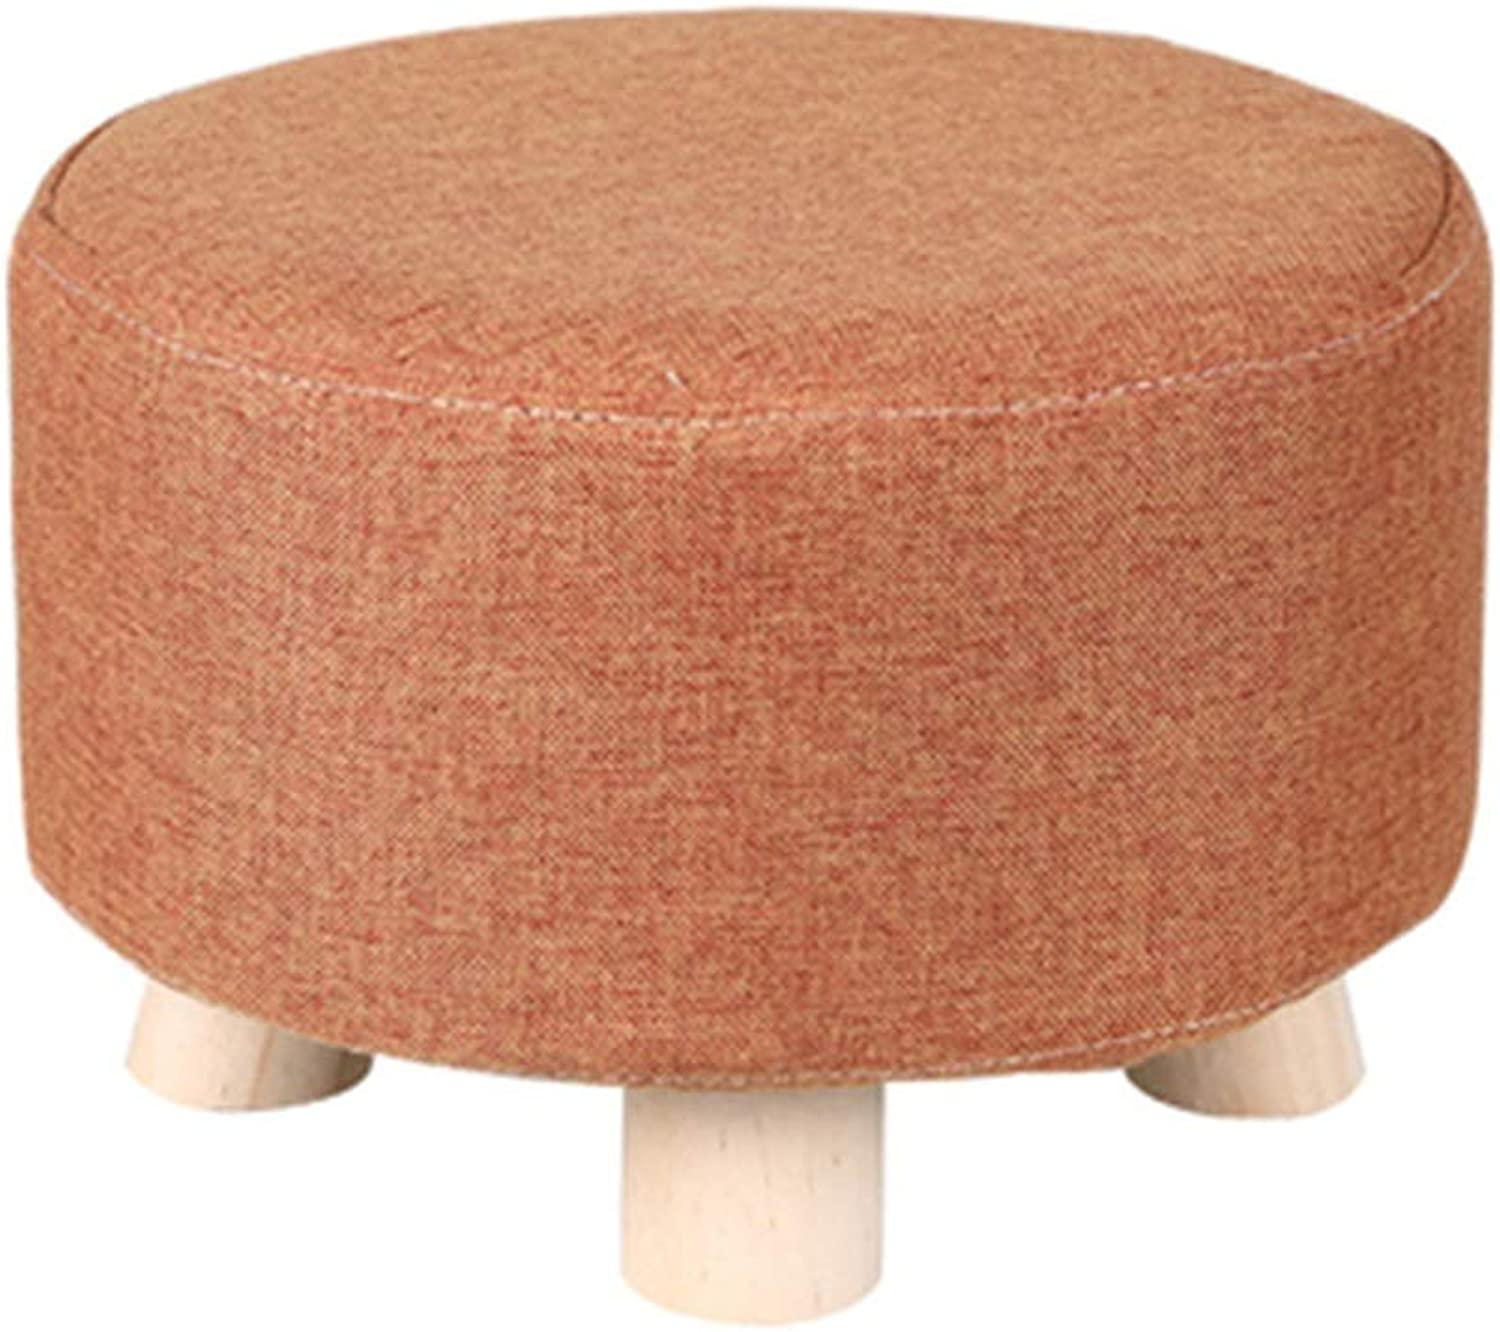 ZHBWJSH Stool Home Fashion Creative Small Stool Sofa Stool Solid Wood Footstool Change shoes Stool Living Room Mound Bench Fabric Stool (color   A)